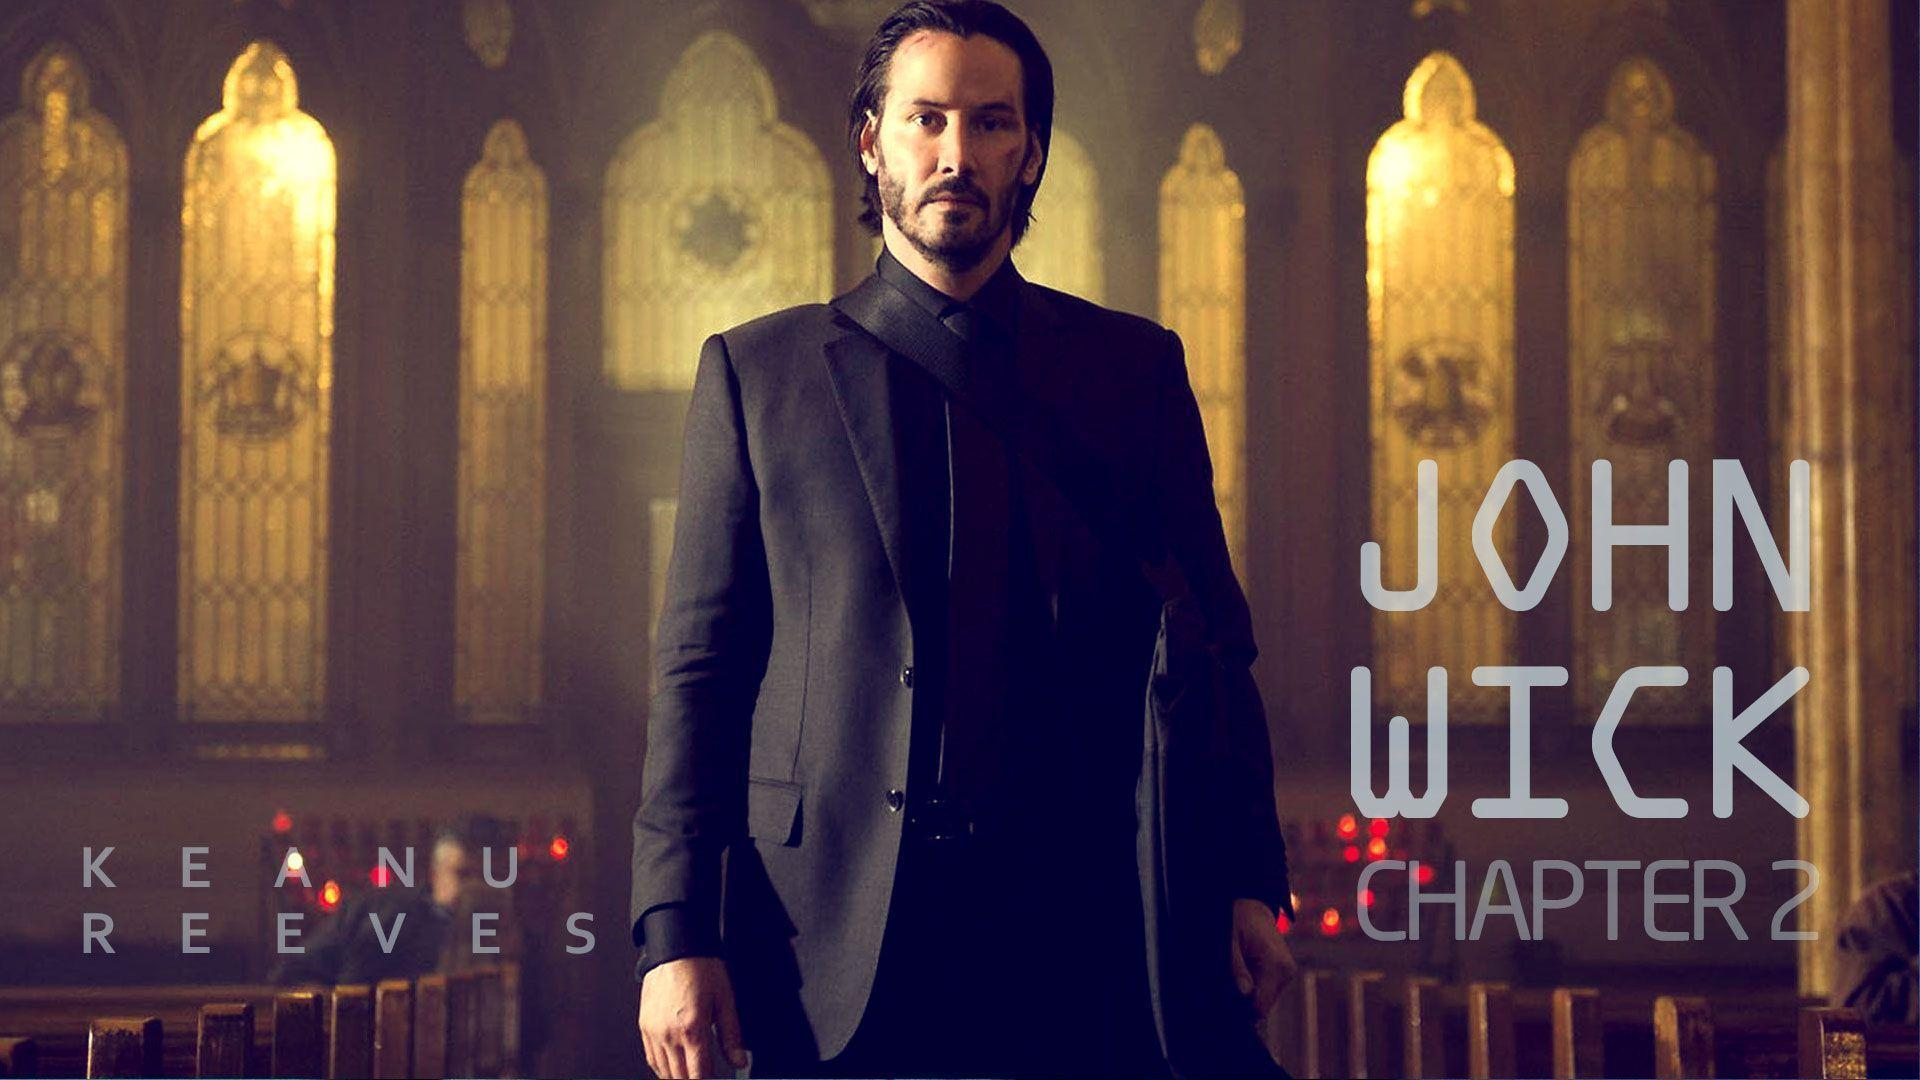 John Wick: Chapter Two Movie wallpapers HD film 2017 poster image